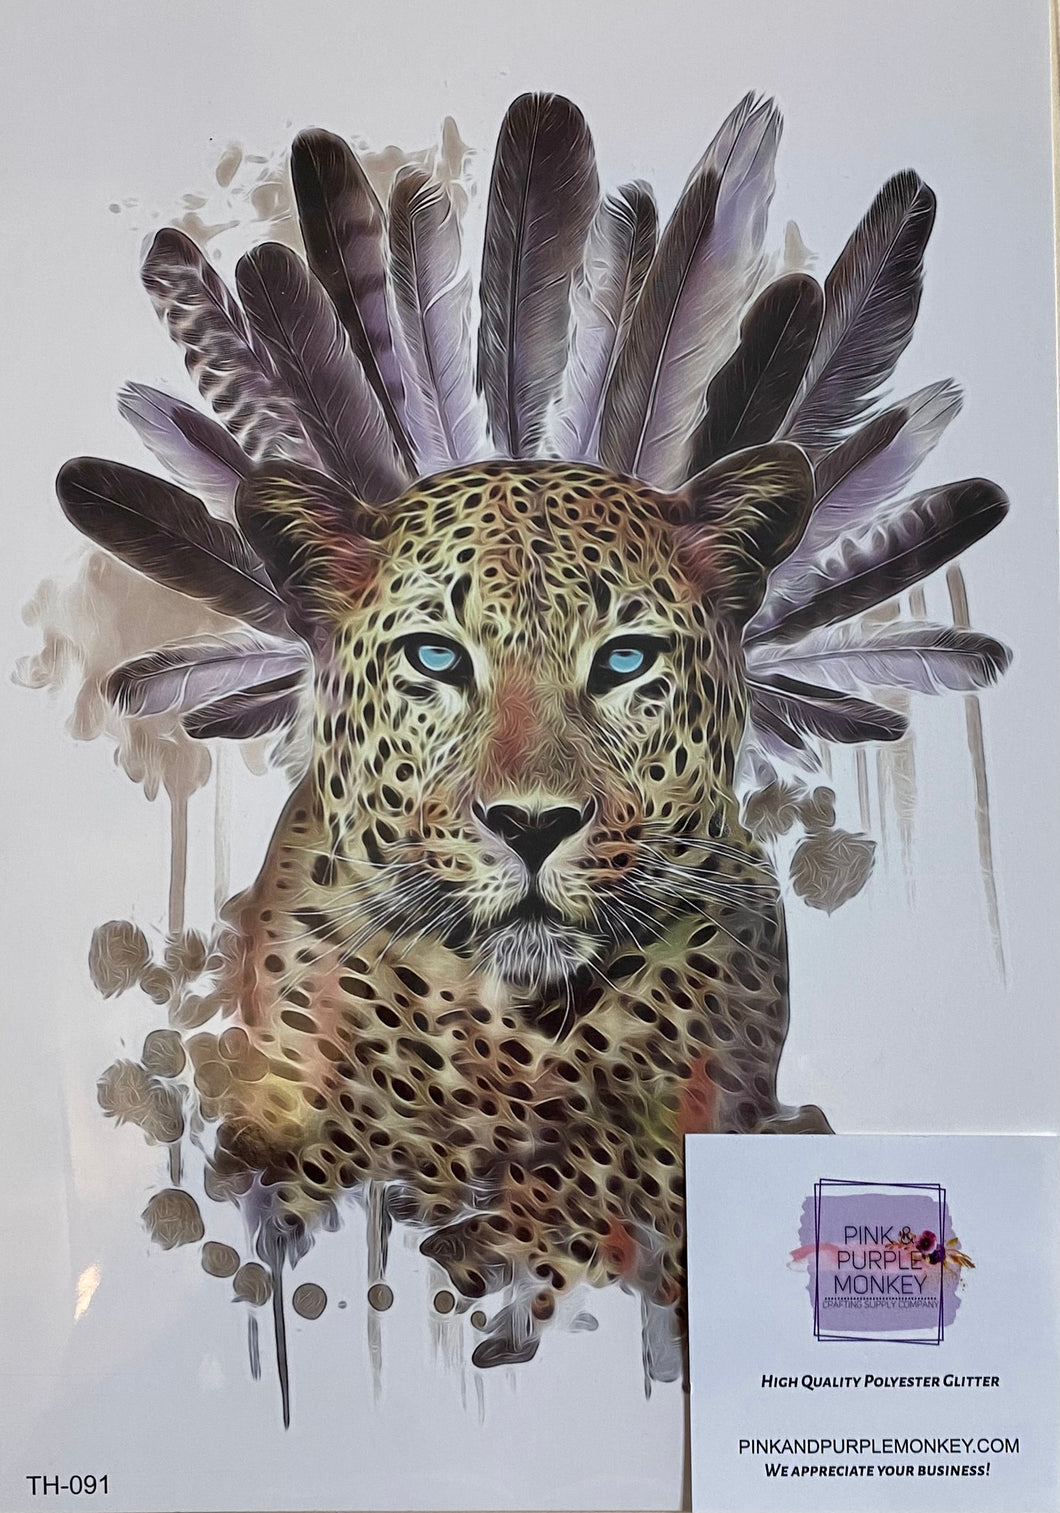 Leopard with Feather Headdress Tattoo - 8 x 5